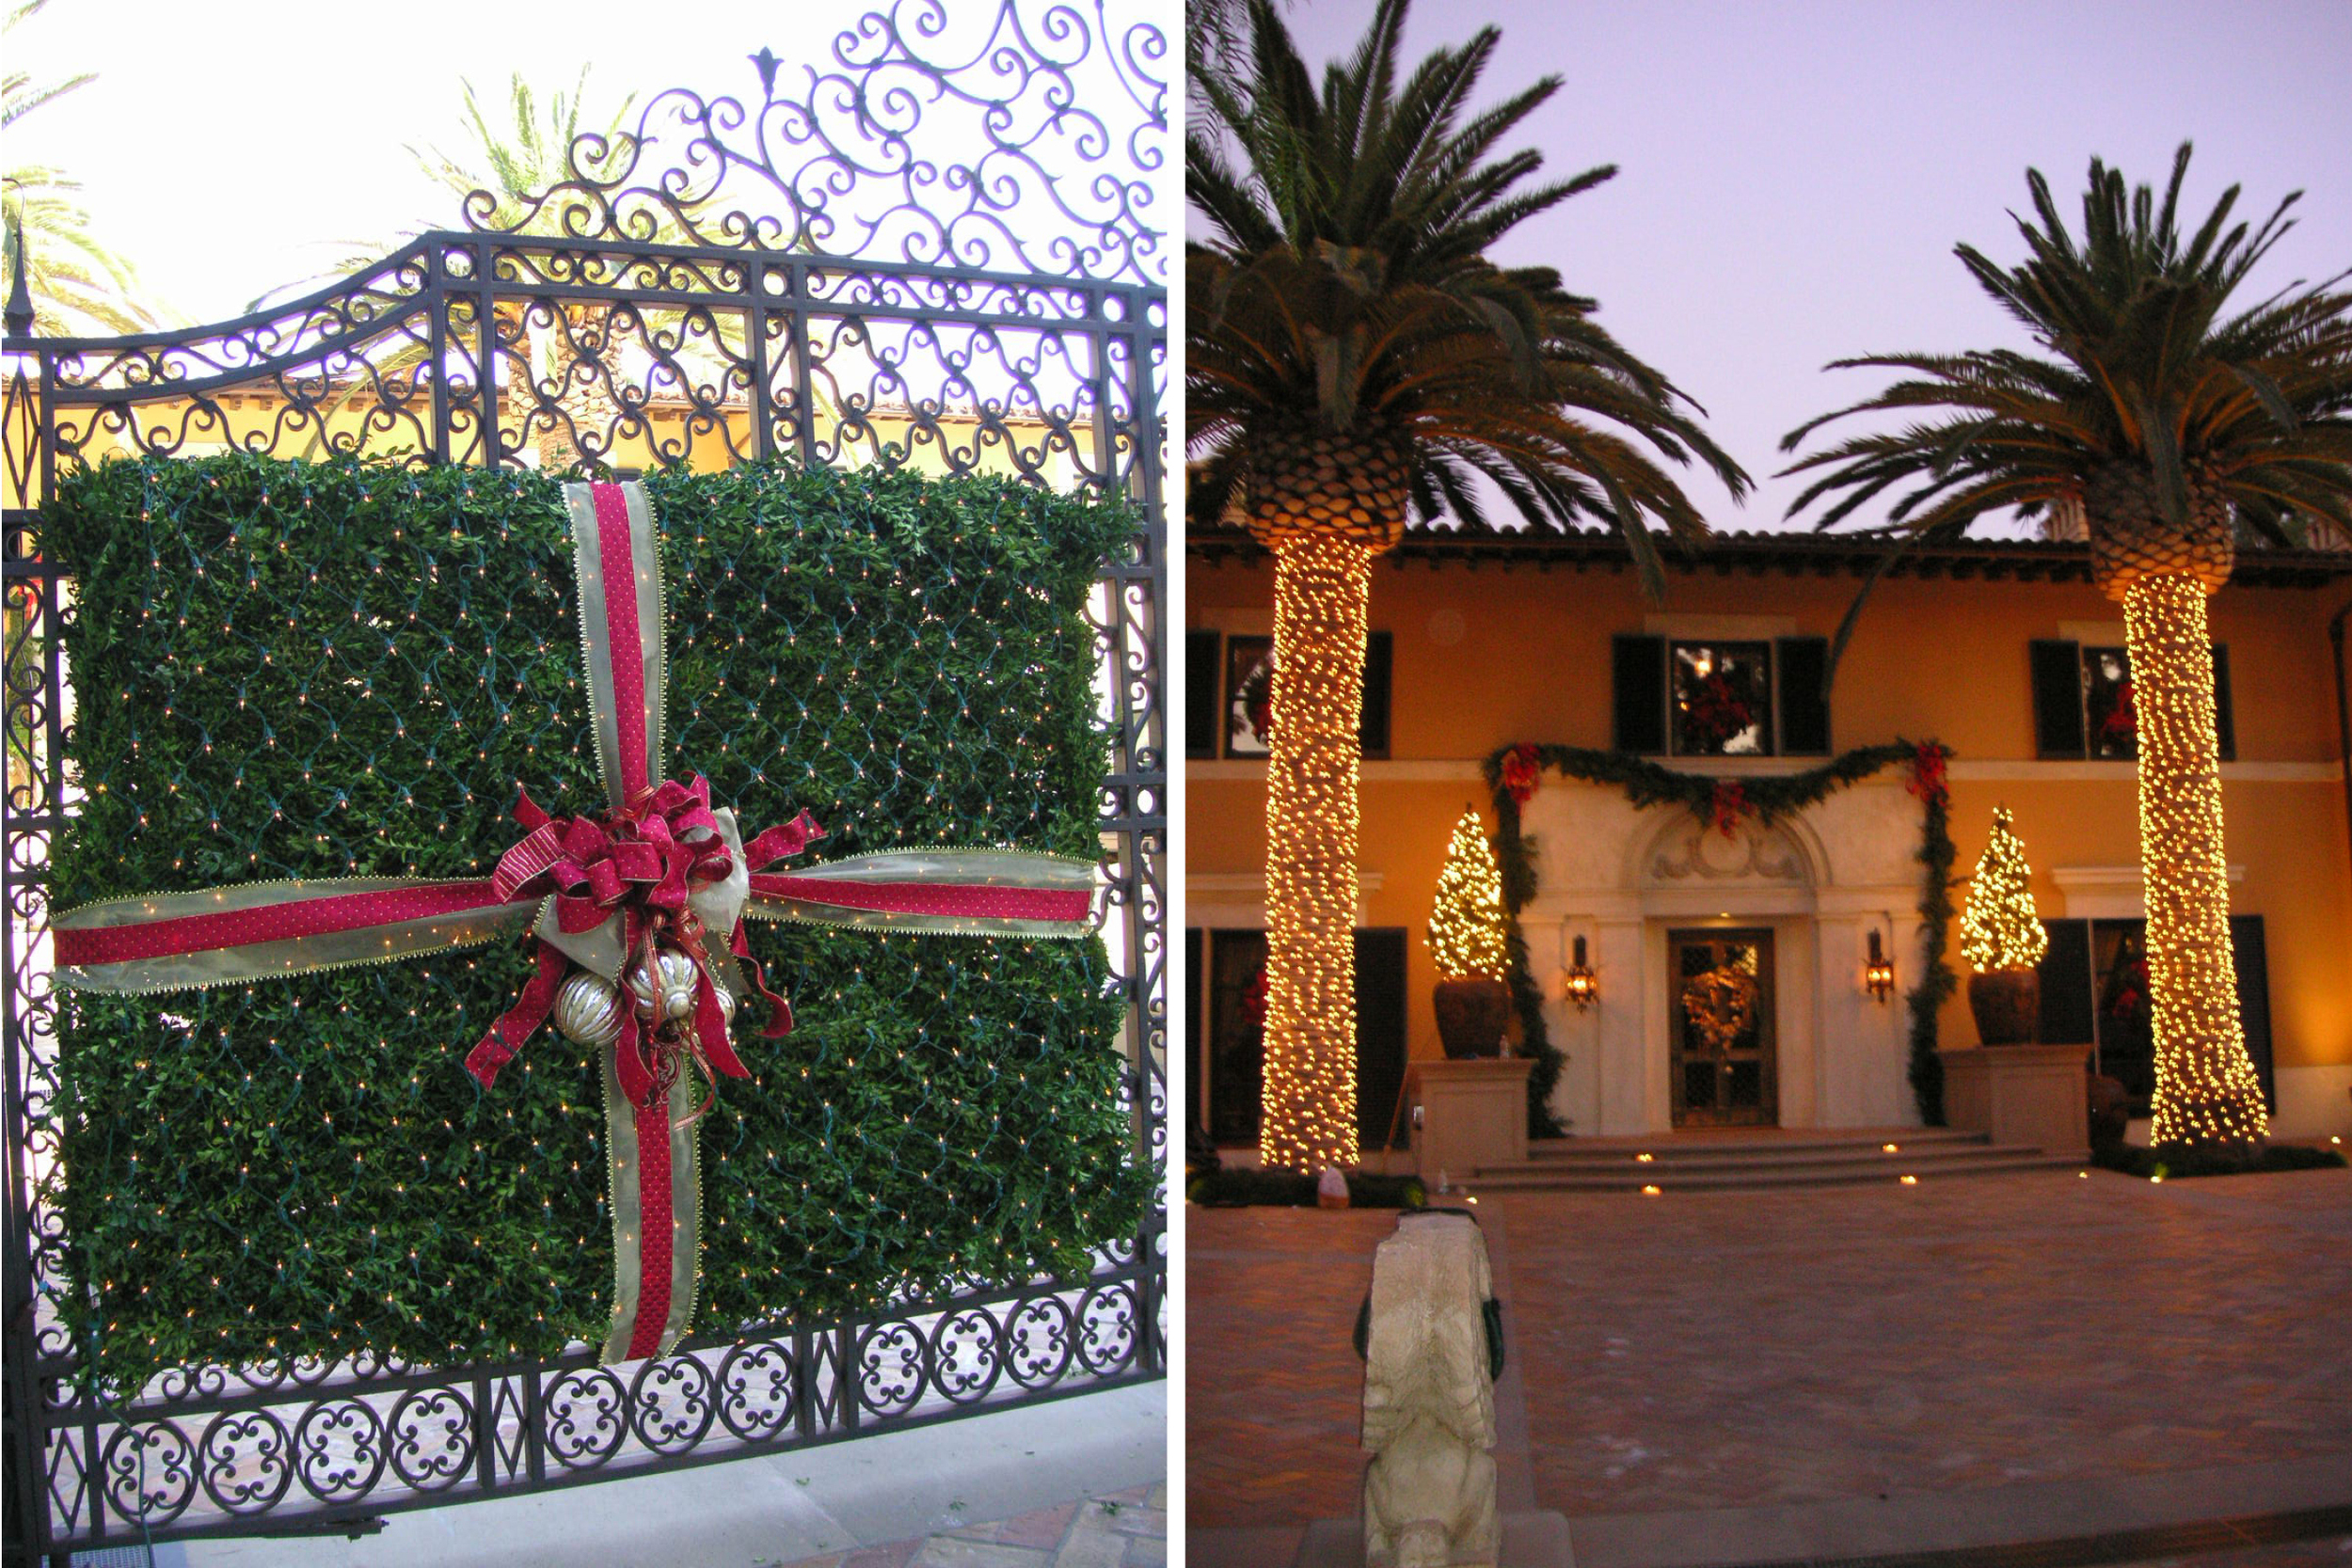 the-village-gardener-holiday-christmas-decor-indoor-outdoor-plant-rental-santa-barbara-los angeles (1).jpg